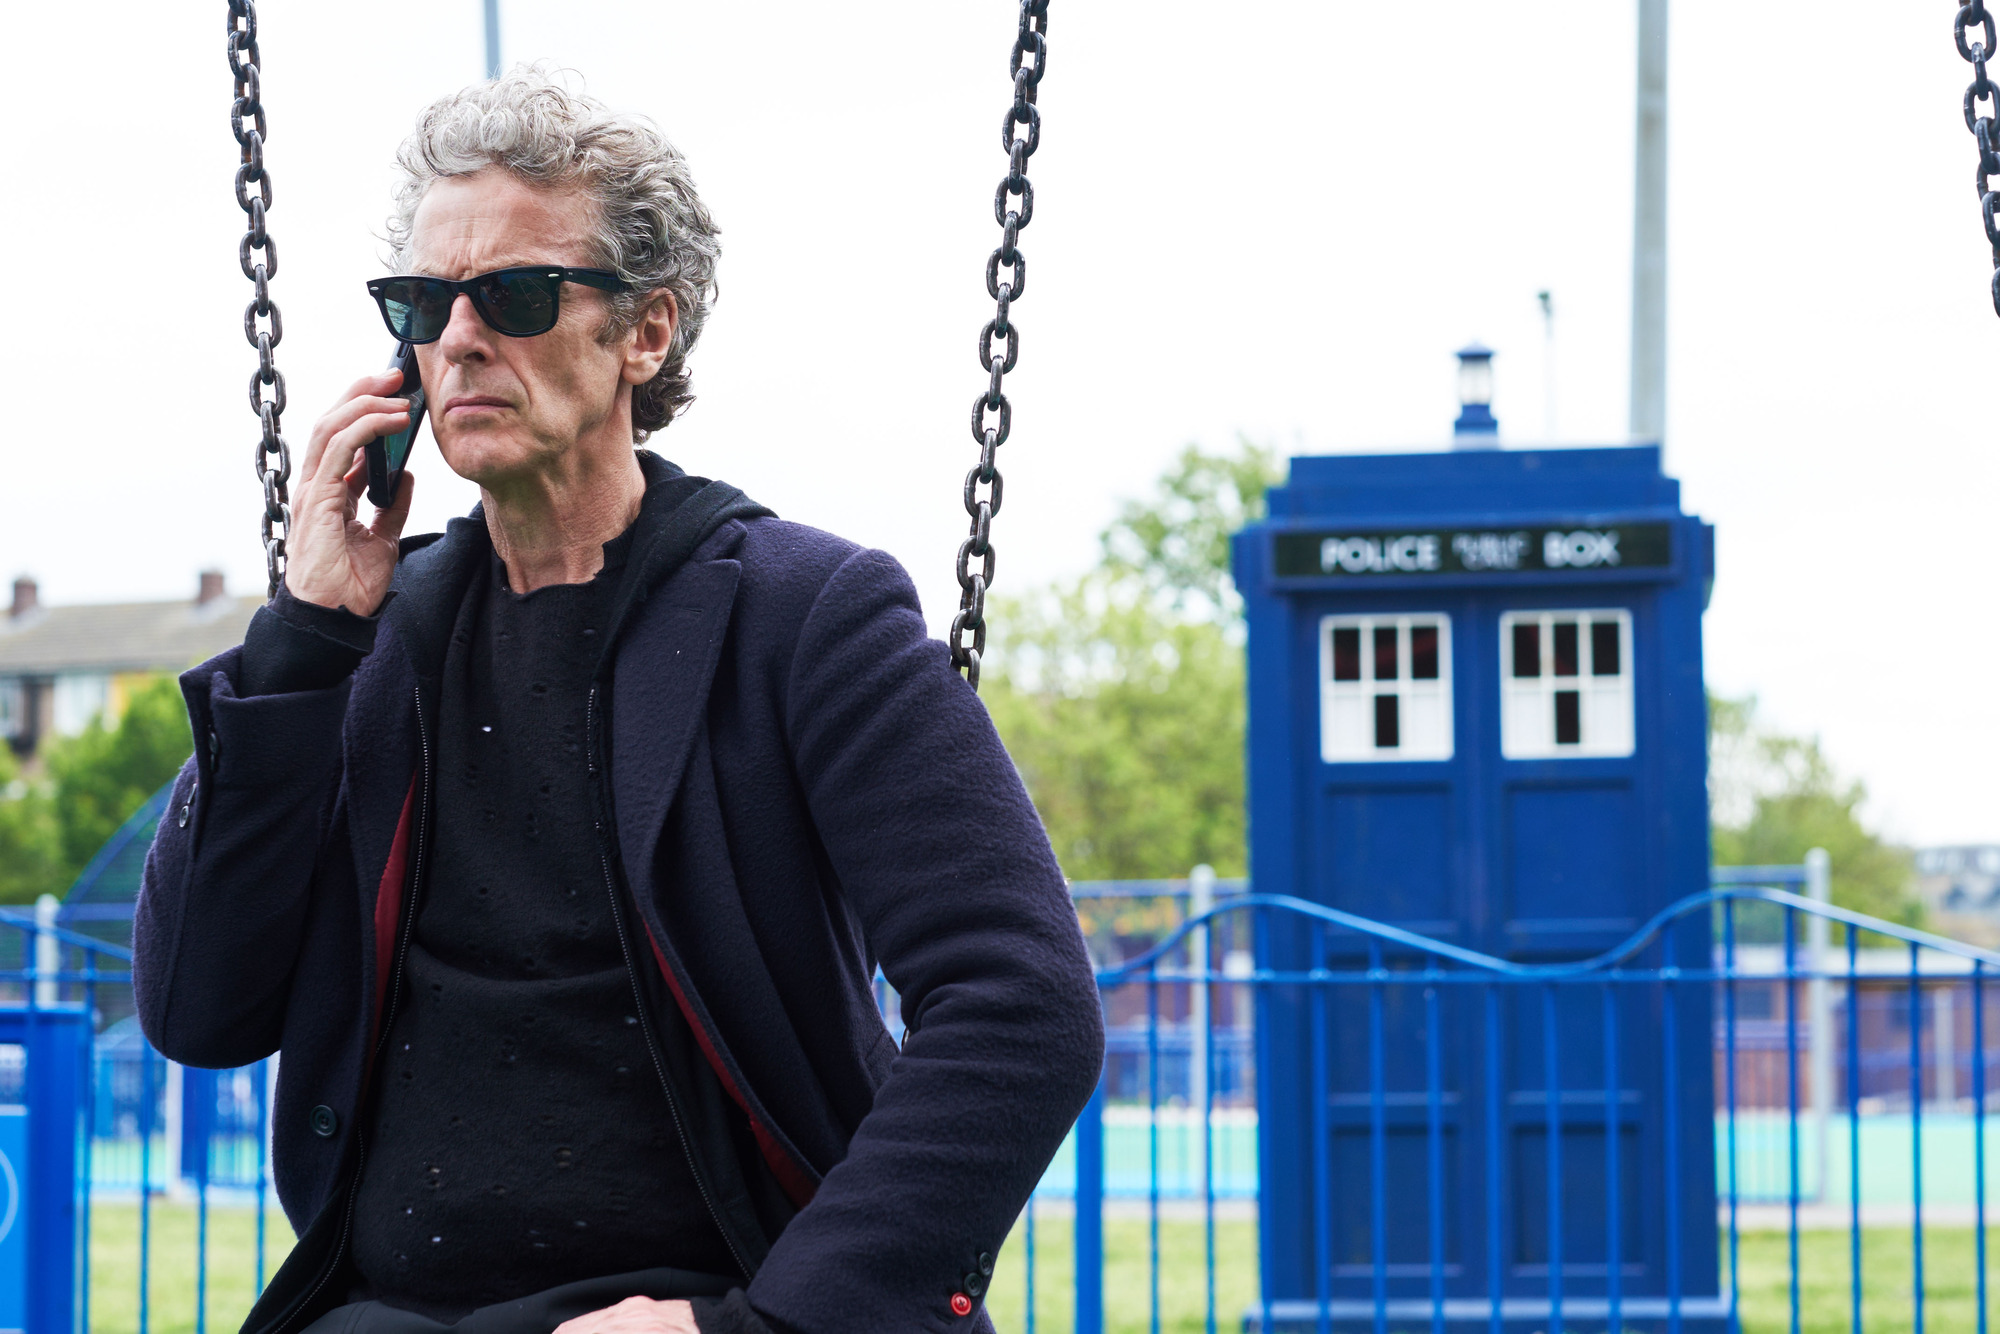 Peter Capaldi as The Doctor (Credit: BBC / Simon Ridgway)